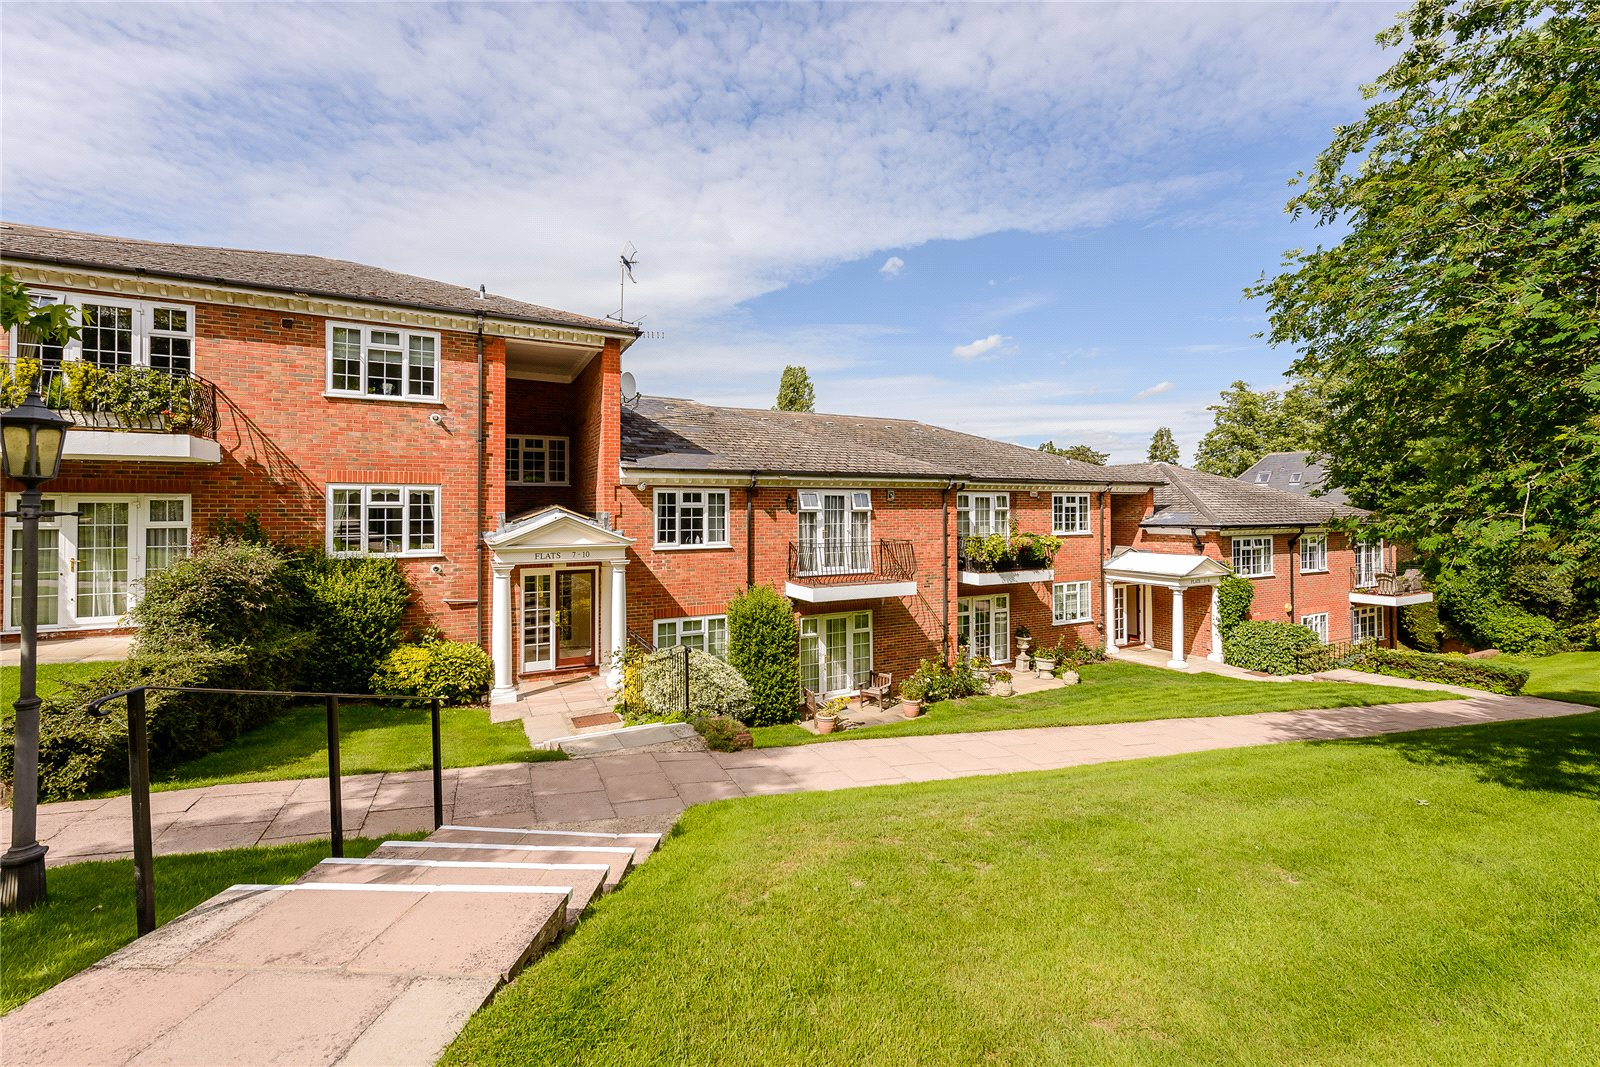 Apartamento por un Venta en Penn Haven, 3 Oak End Way, Gerrards Cross, Buckinghamshire, SL9 Gerrards Cross, Inglaterra